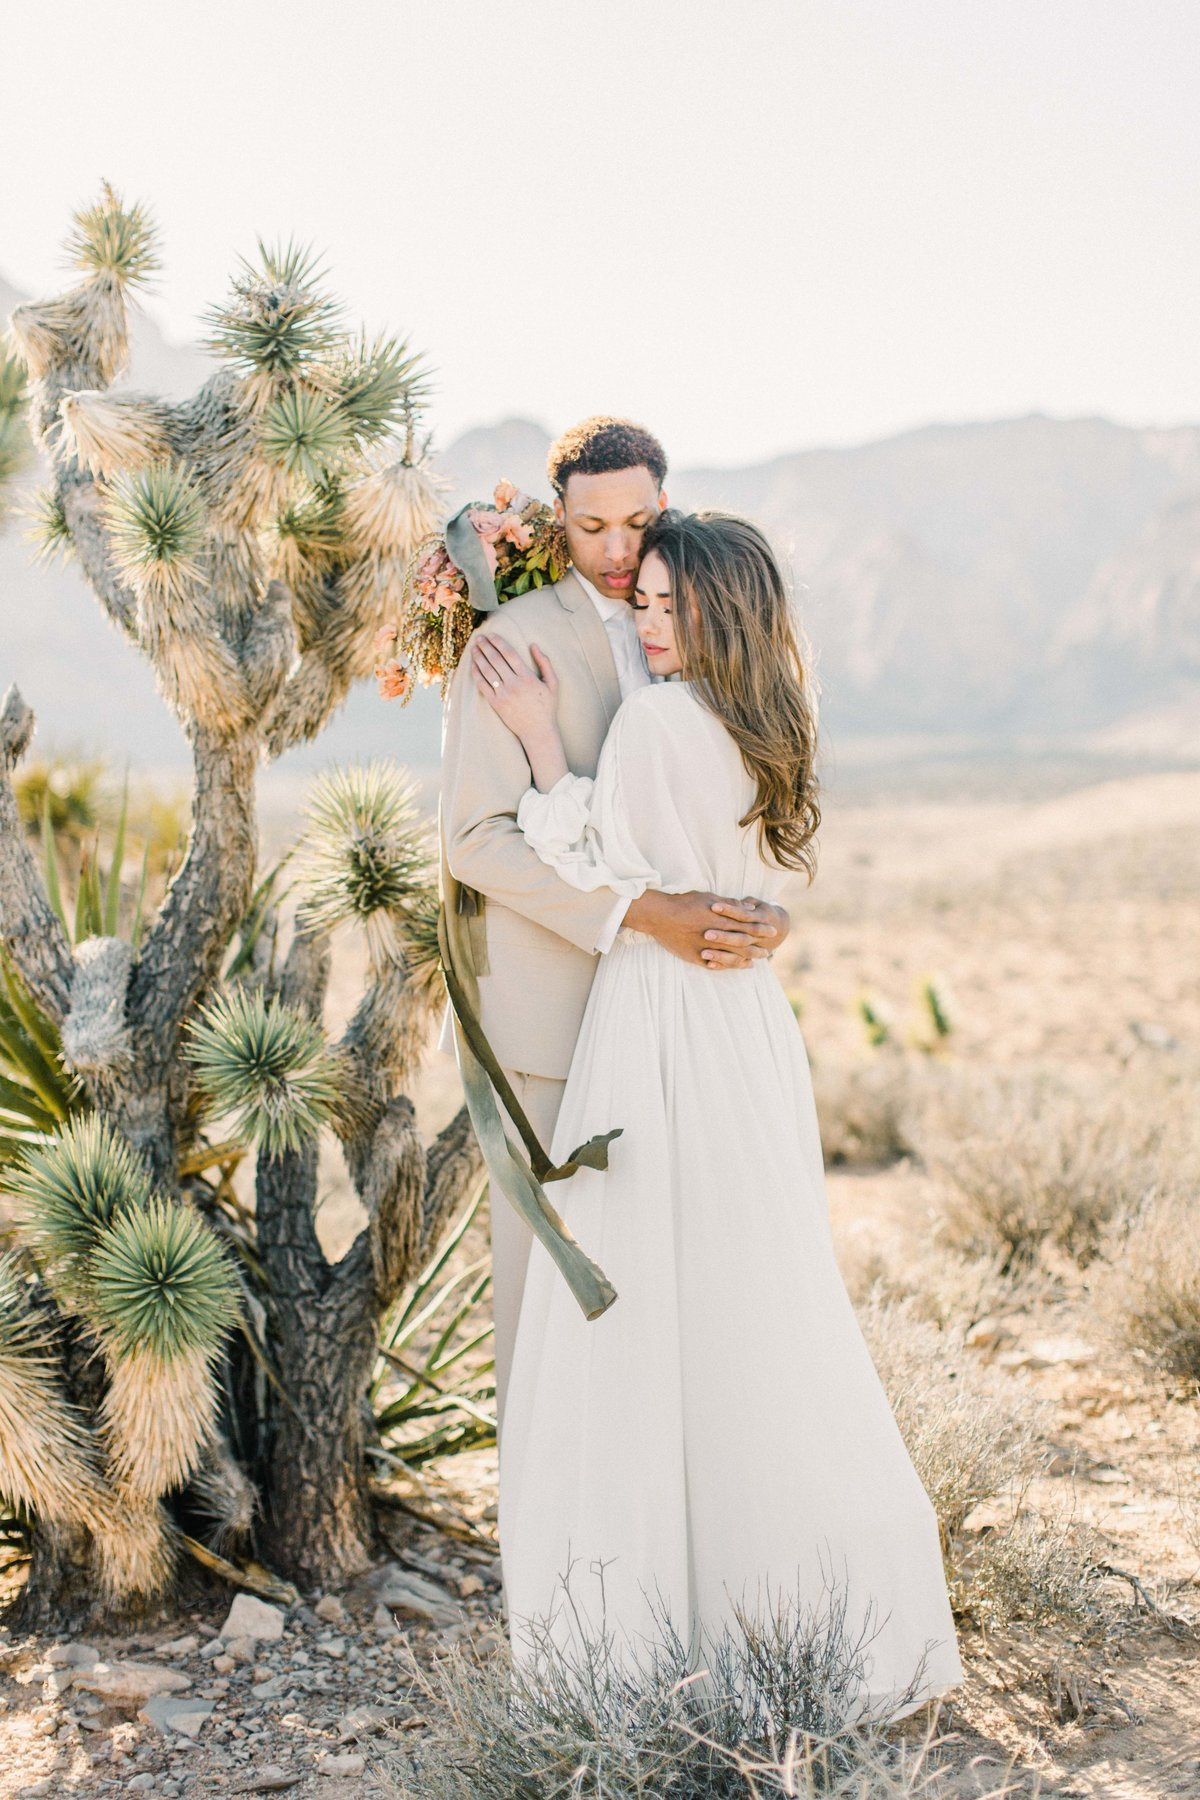 Babsie-Ly-Photography-Red-Rock-Canyon-Las-Vegas-Wedding-Elopement-Fine-Art-Film-domenica-domenica-robe-032